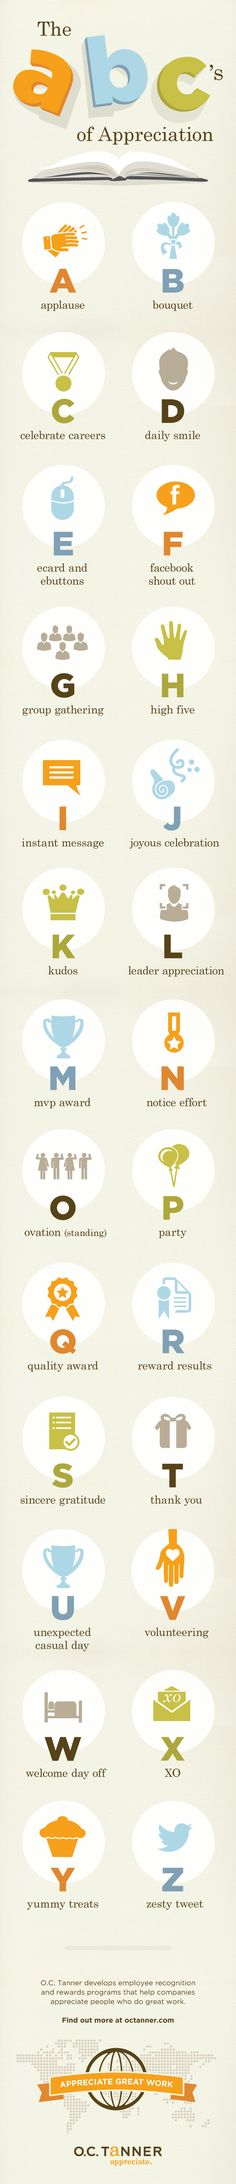 The ABCs of Employee Appreciation #Infographic